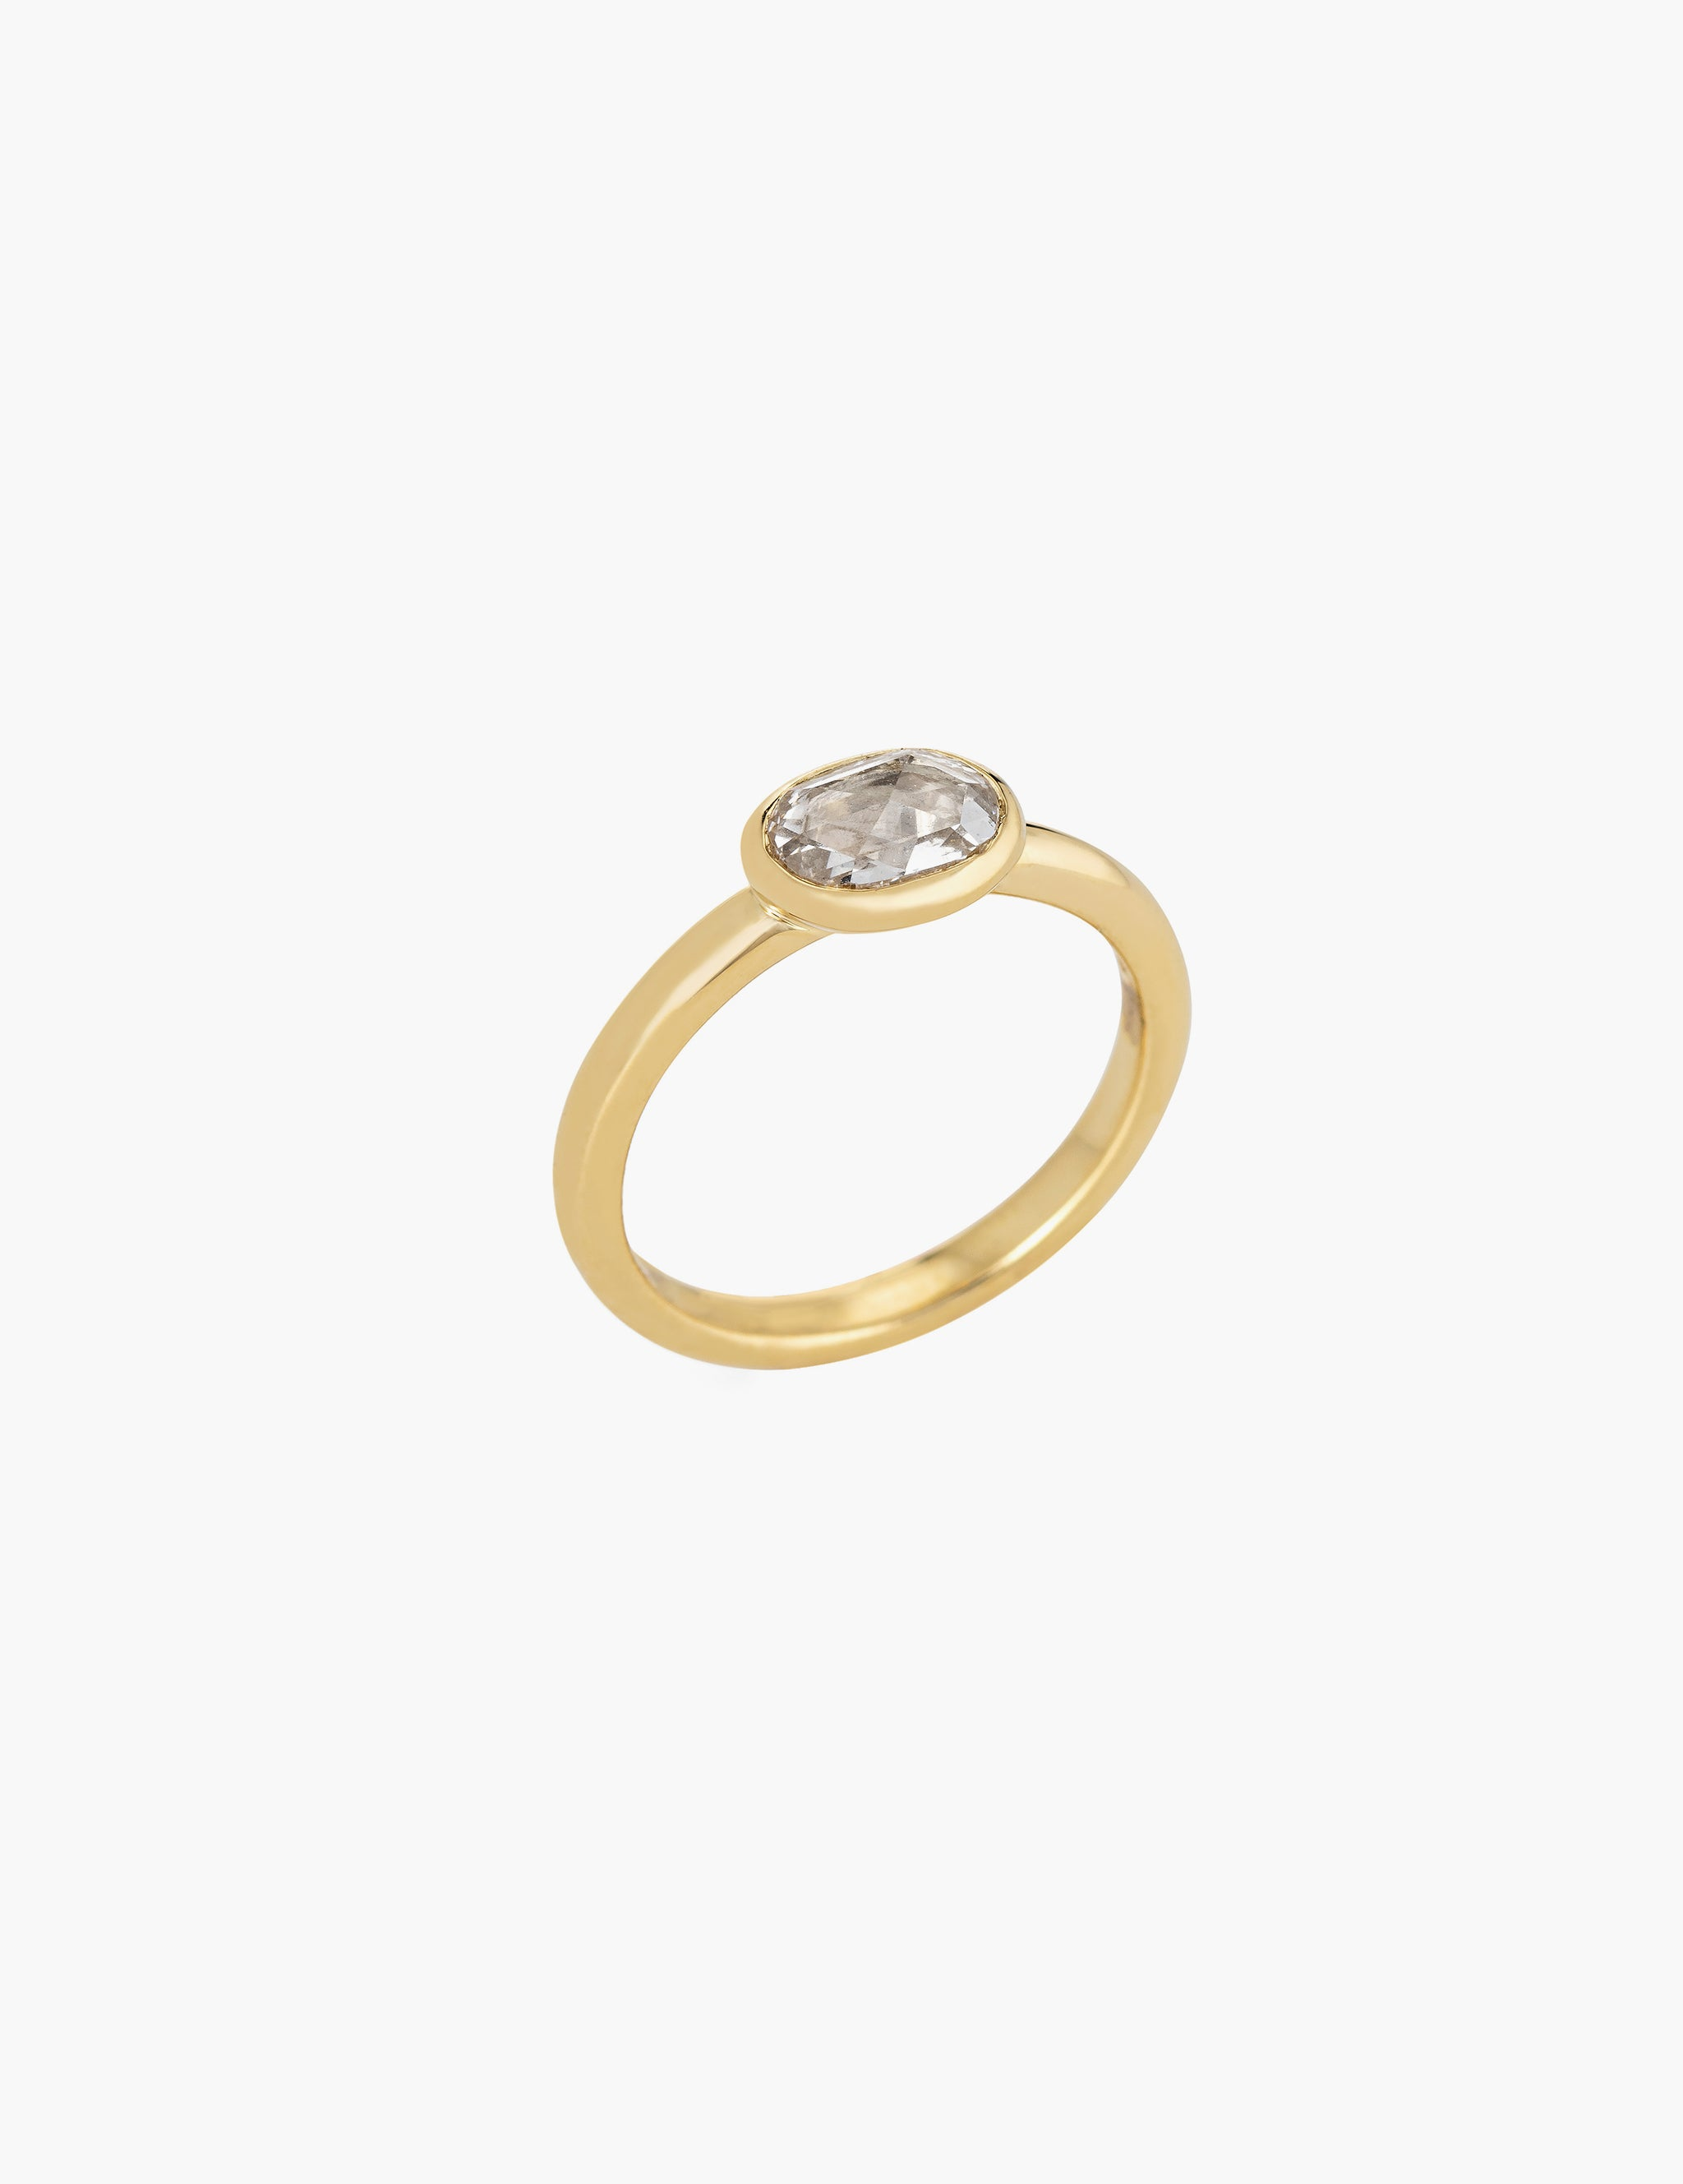 Oval Rose Cut Diamond Ring